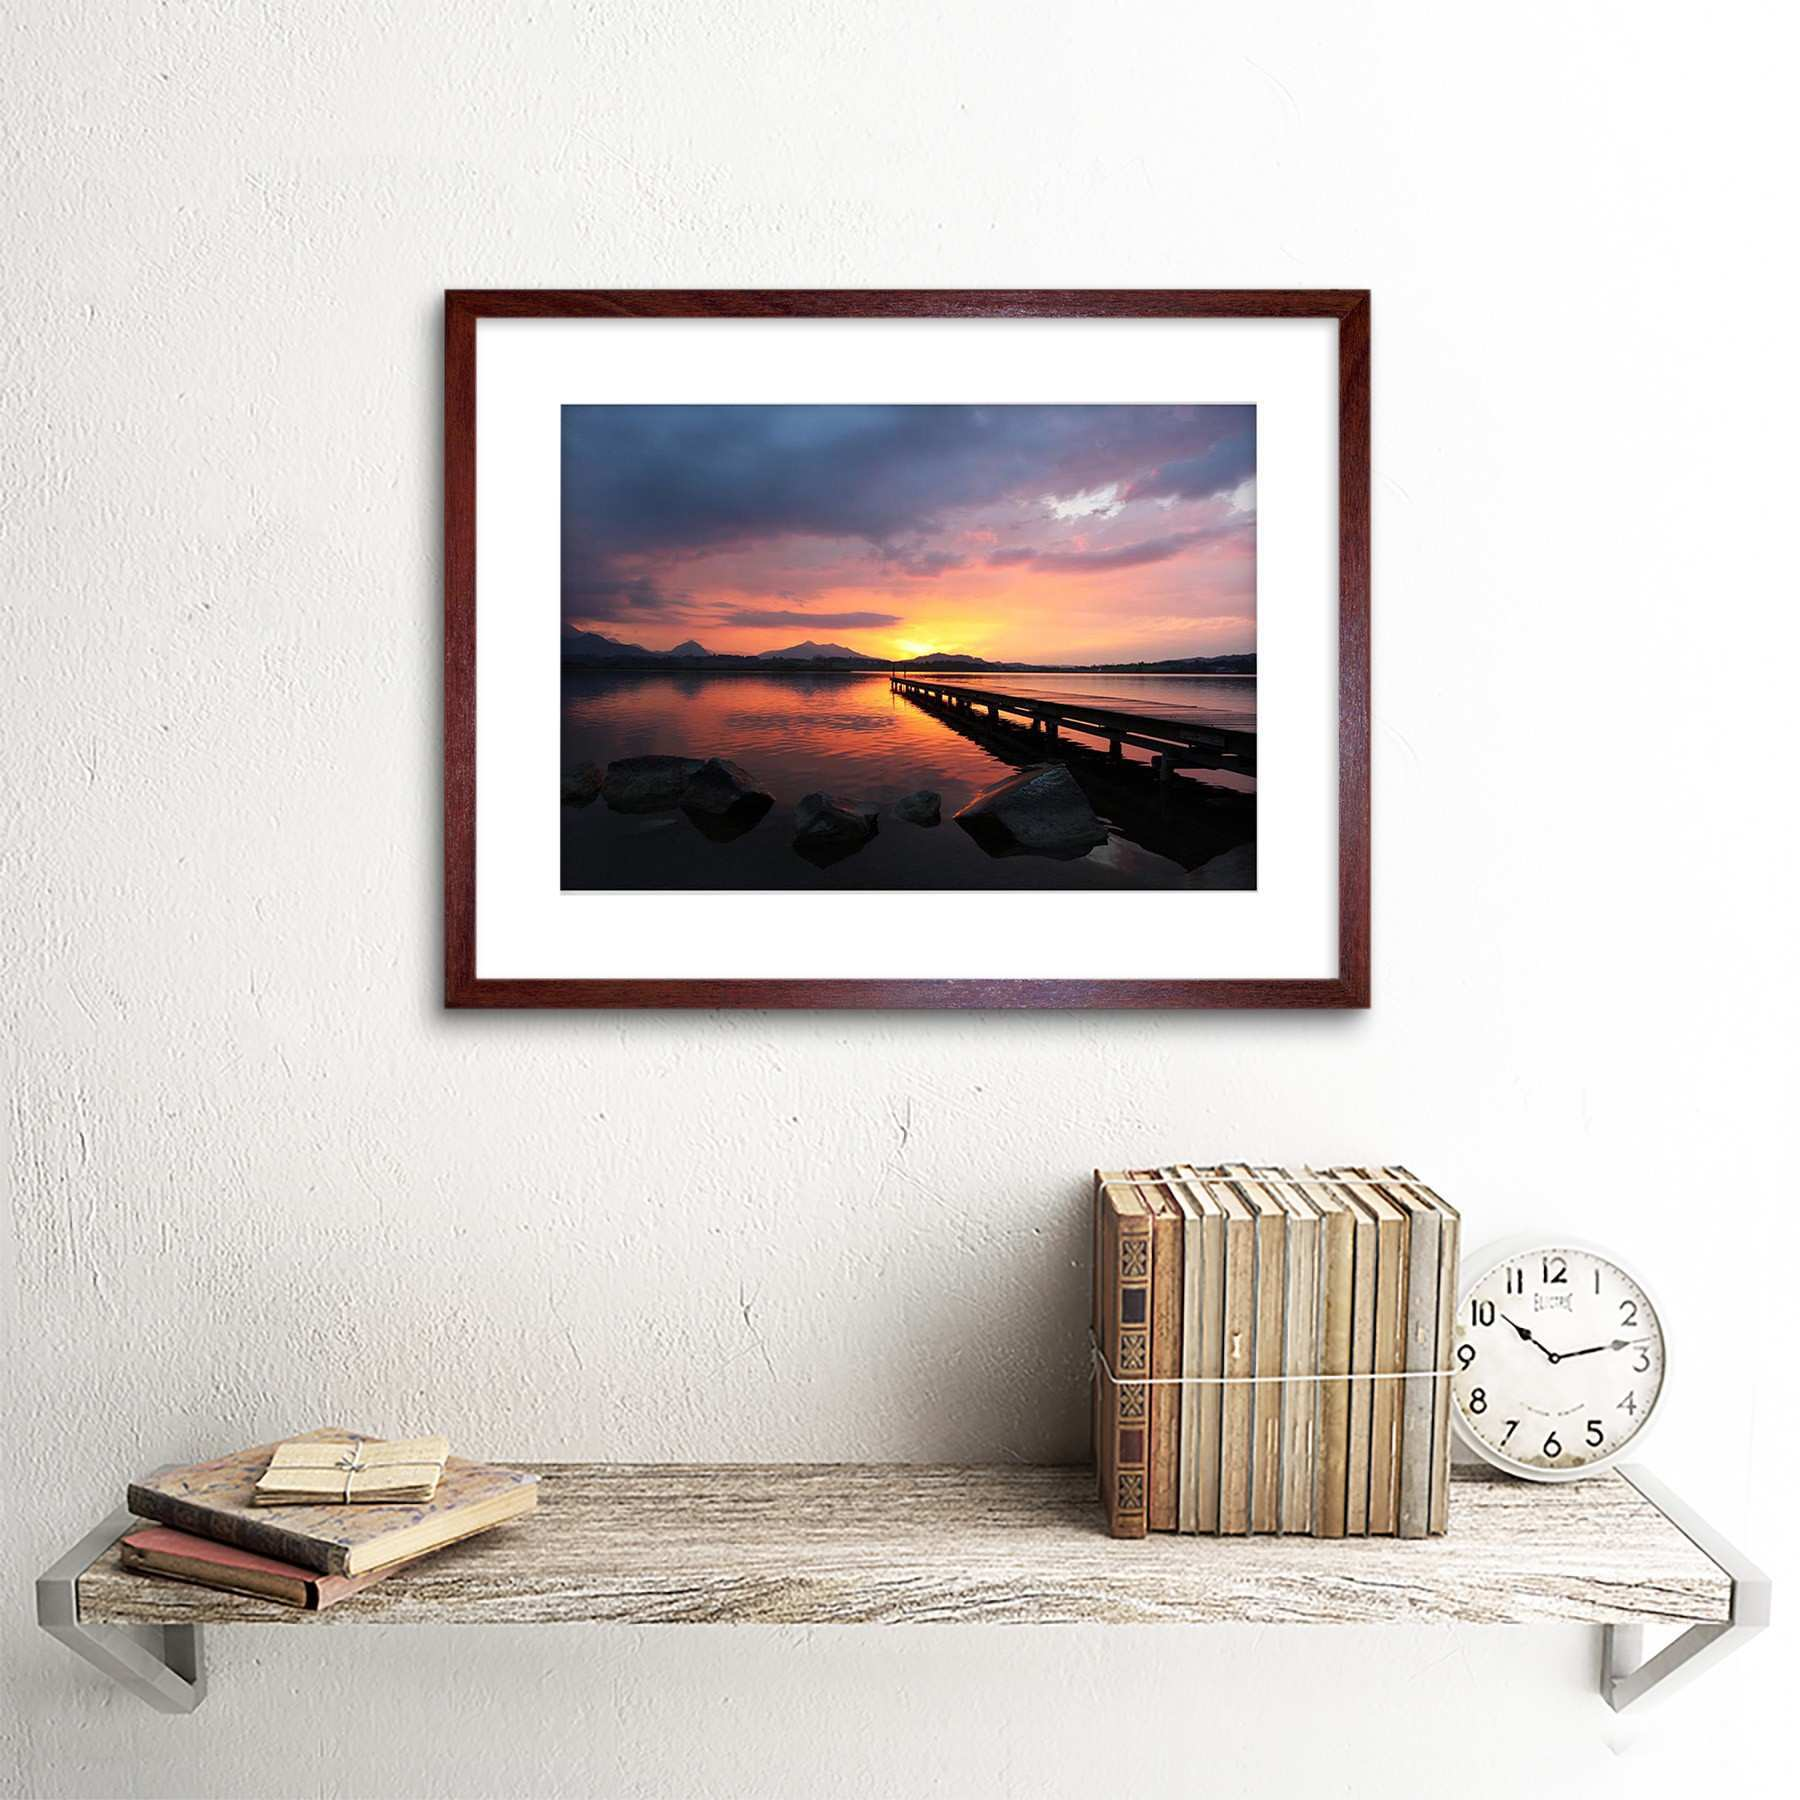 Sunset Dock Lake Framed Art Print Poster Picture Wall